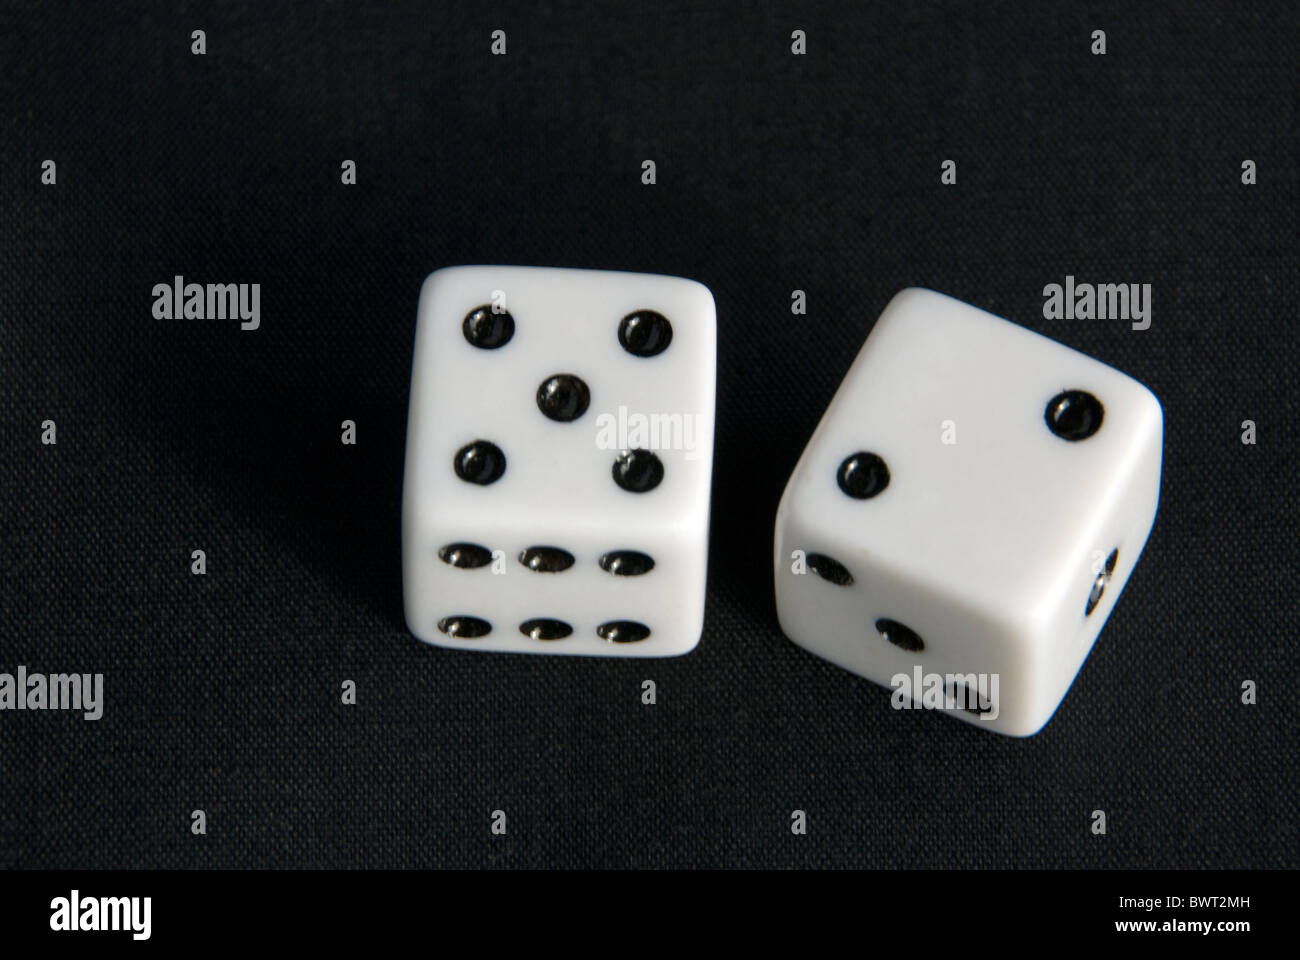 Dice that show a 7 for craps or other dice game, concept of gambling, addiction, winning, financial gain or financial - Stock Image